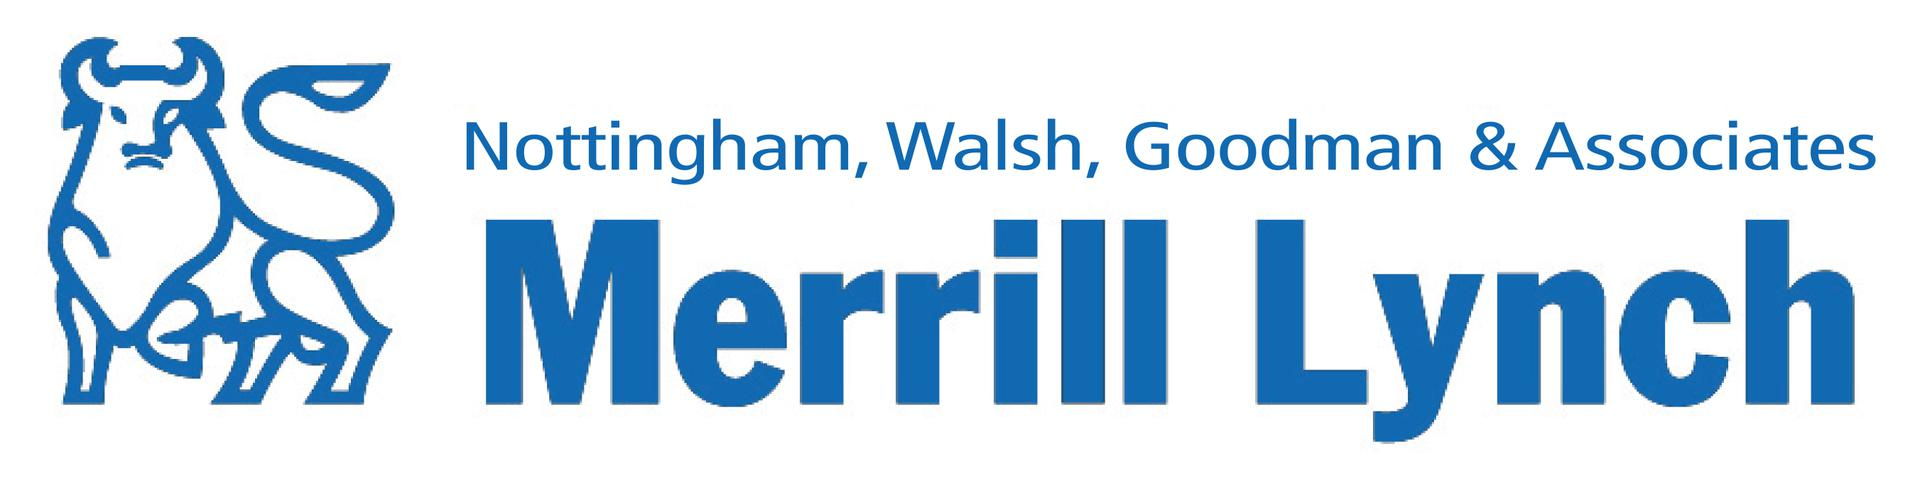 Merrill Lynch The Nottingham-Goodman Group